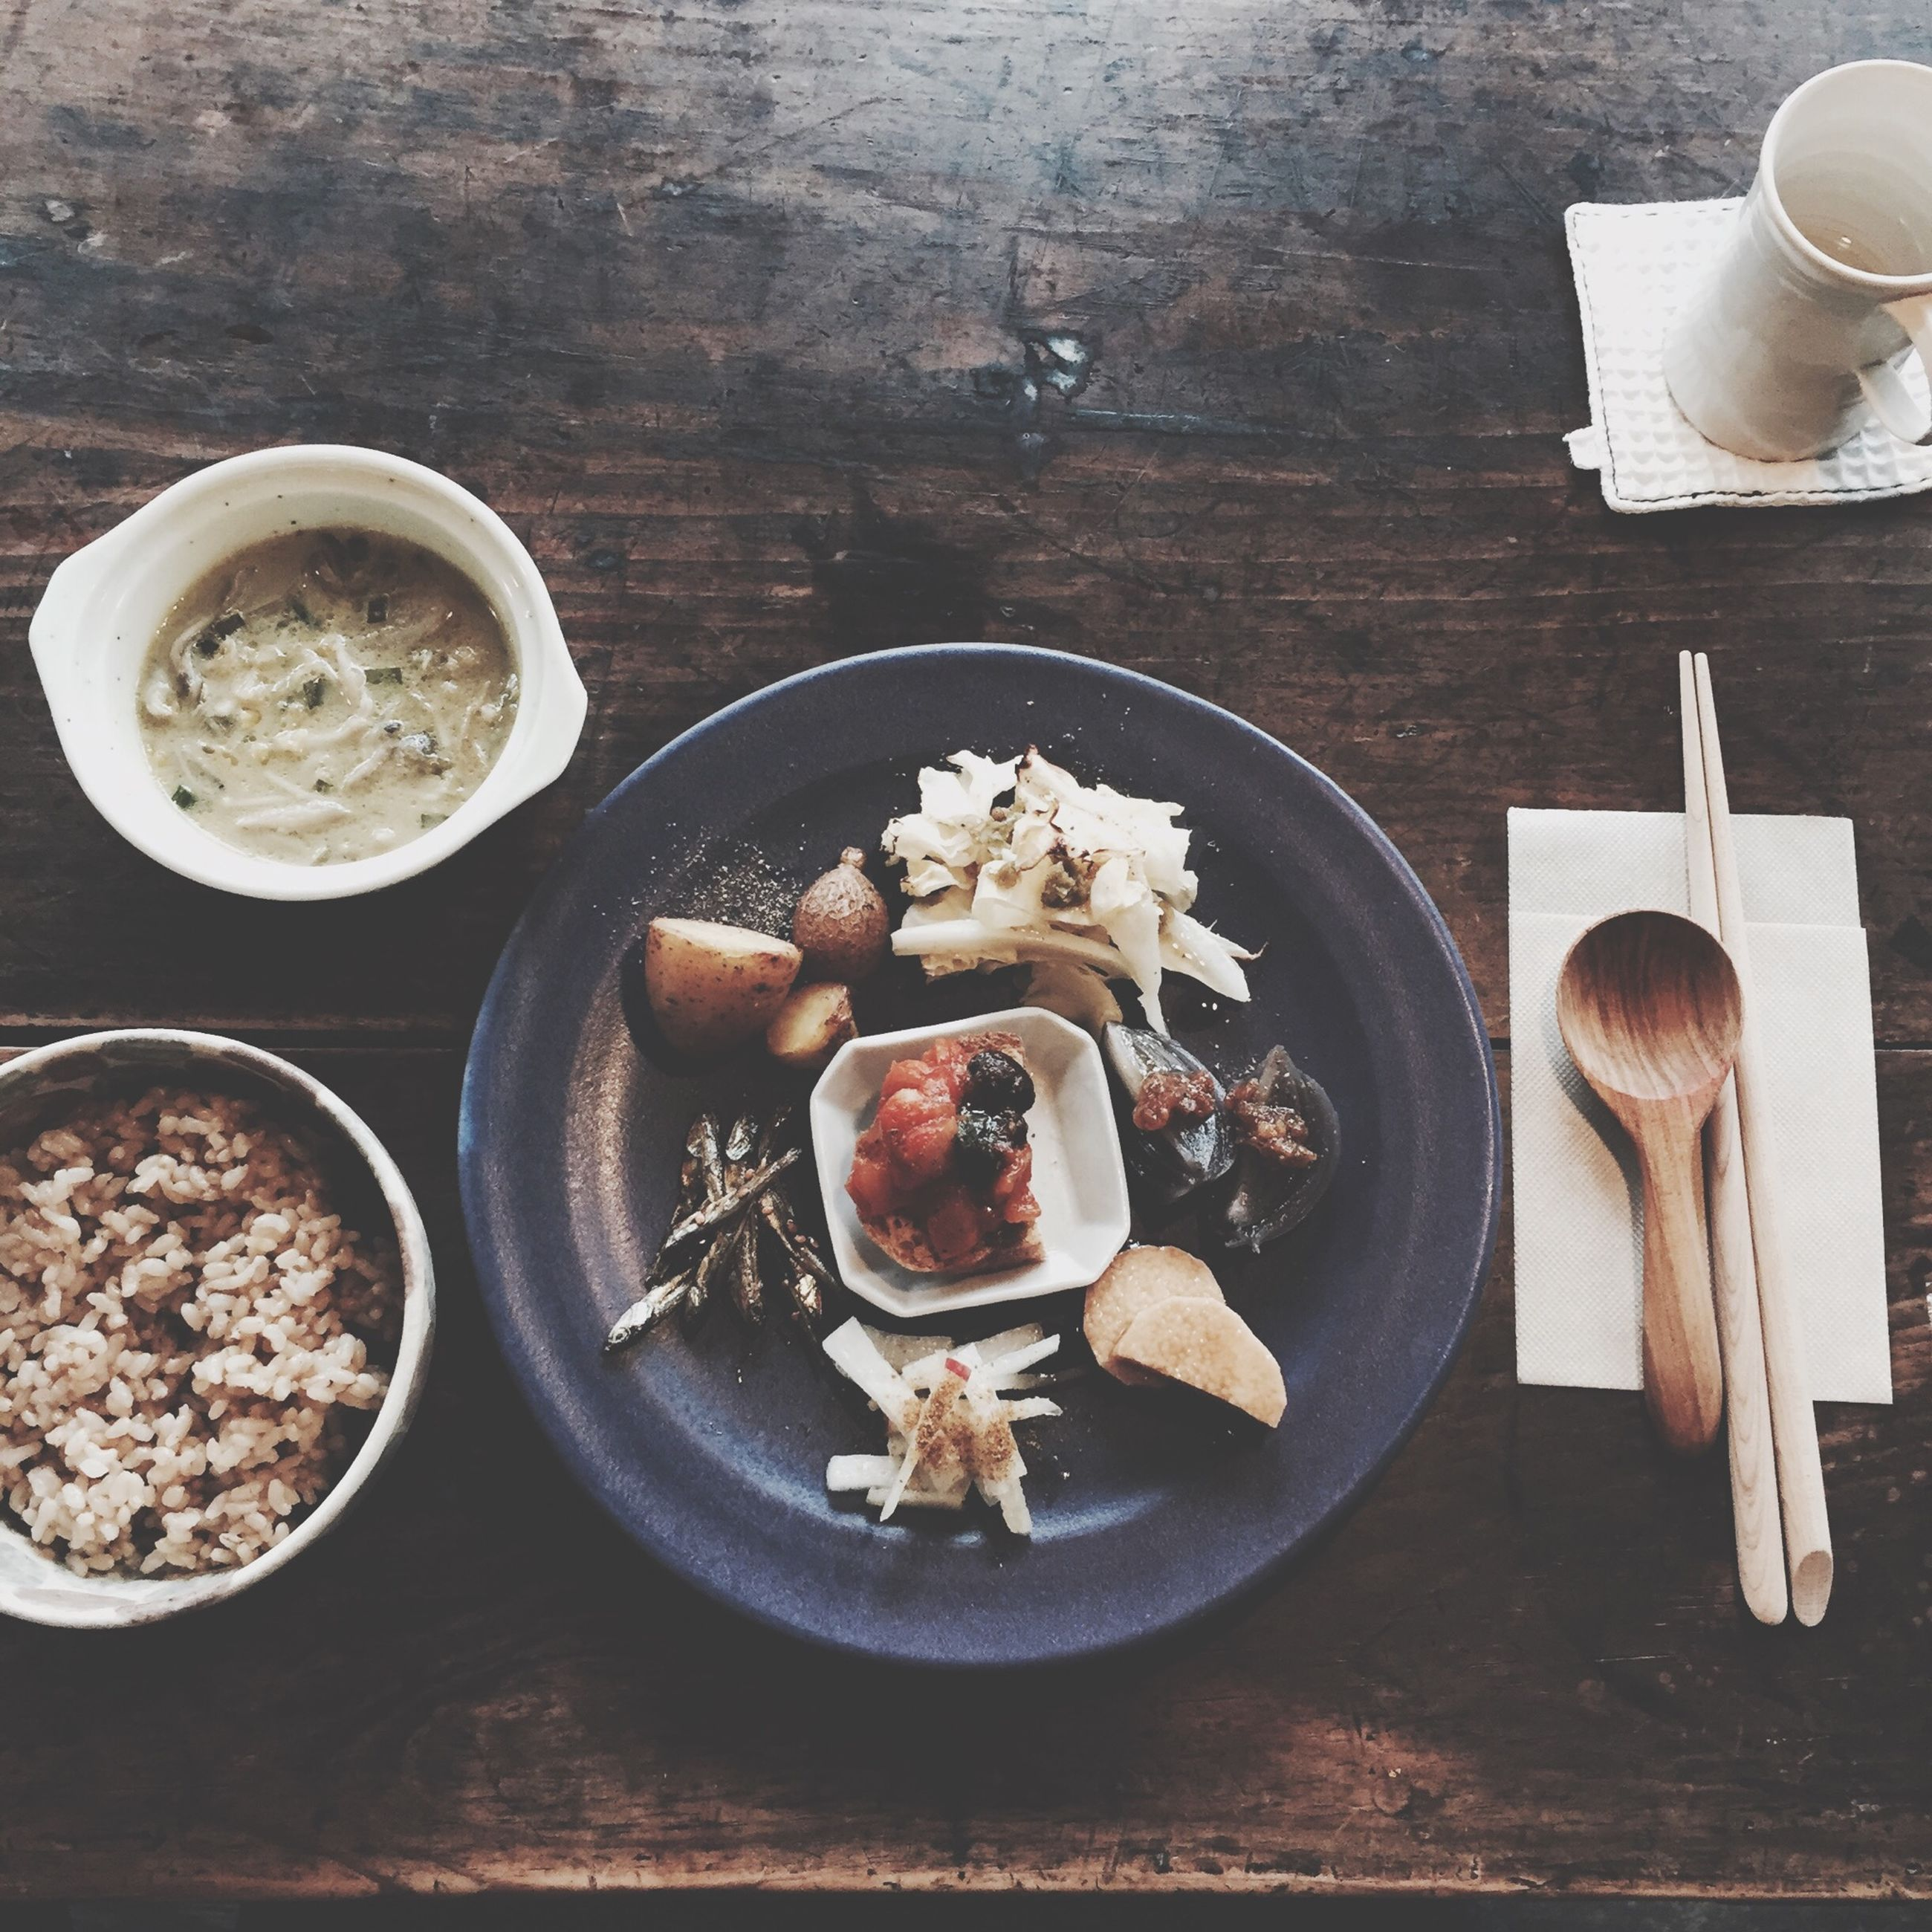 food and drink, indoors, freshness, table, food, still life, plate, ready-to-eat, high angle view, drink, bowl, healthy eating, spoon, serving size, indulgence, refreshment, fork, directly above, breakfast, meal